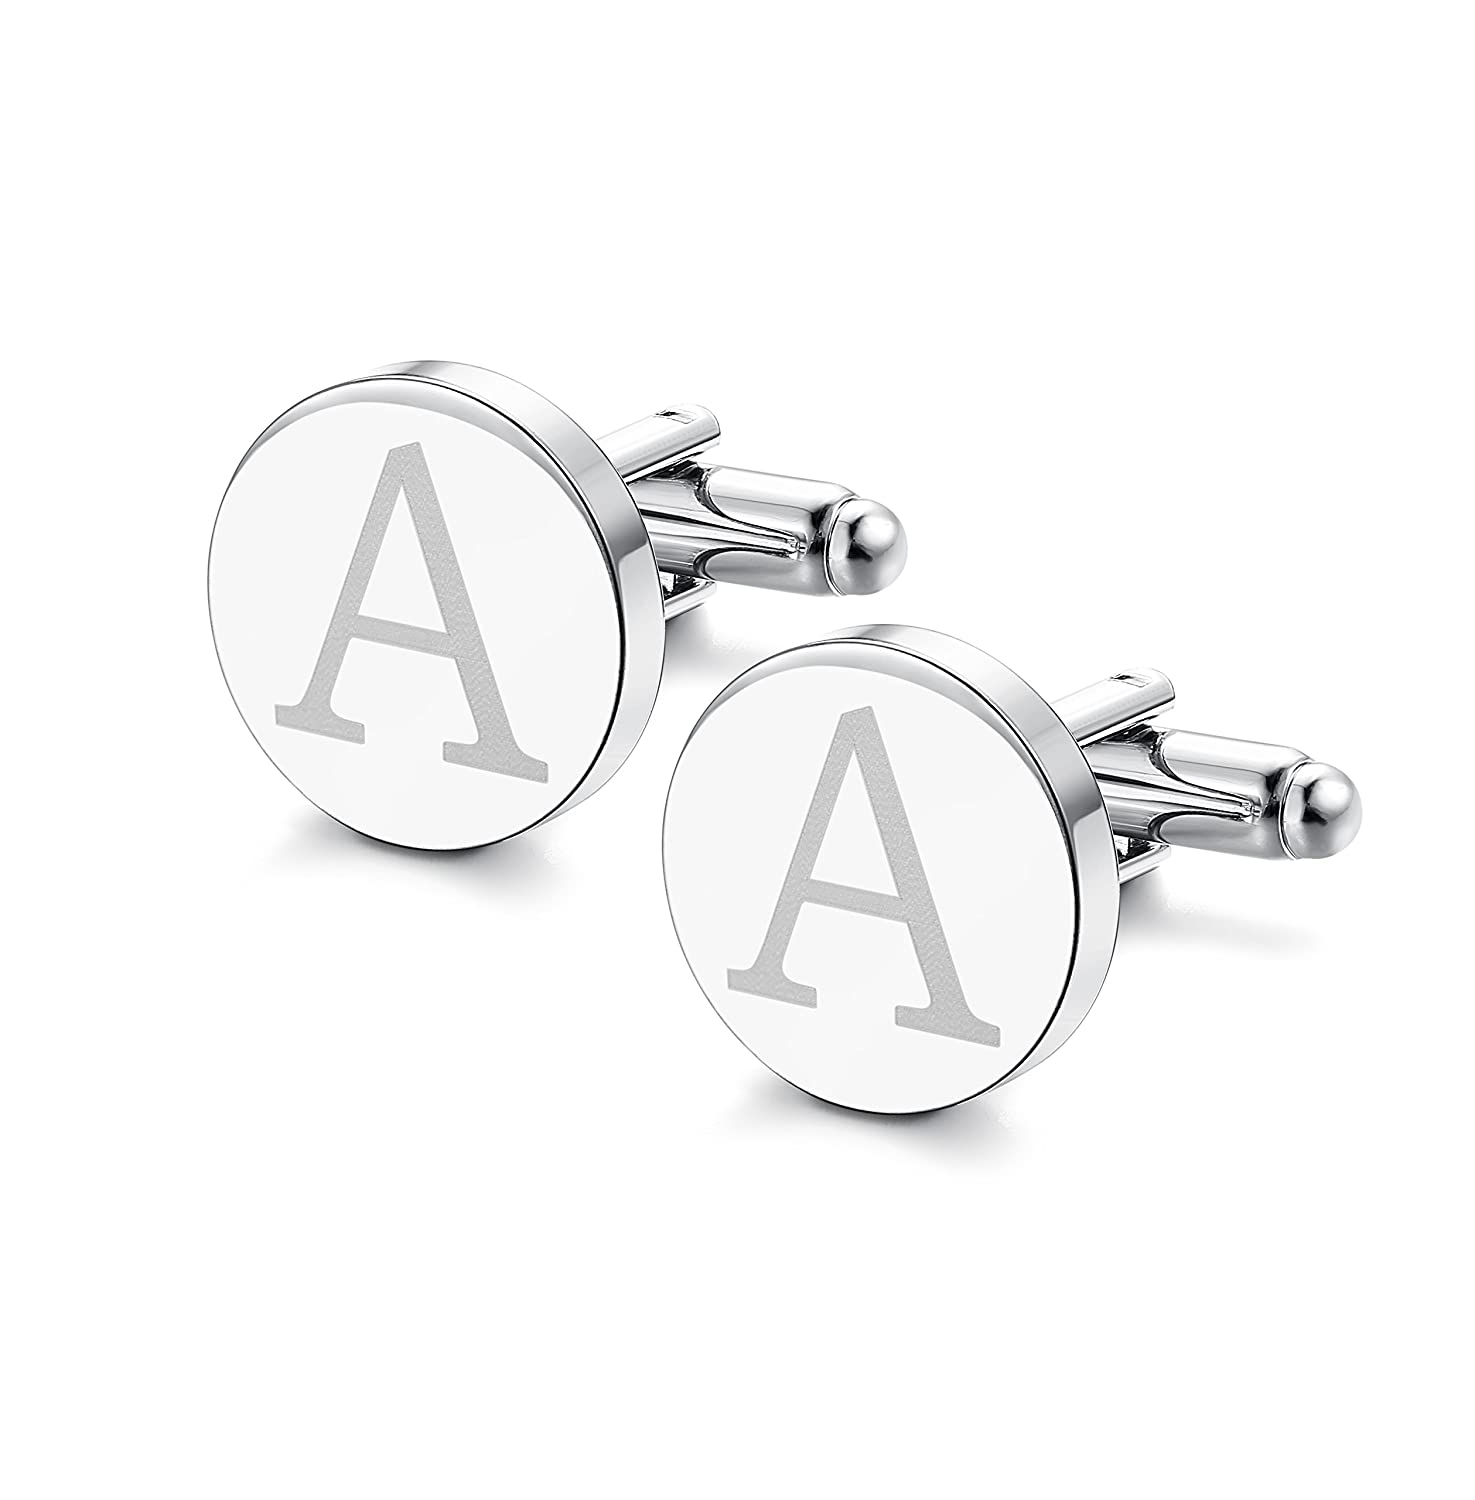 ORAZIO Mens Classic Engraved Initial Cufflinks Alphabet Letter Cufflinks Formal Business Wedding Shirts A-Z CB04L-A